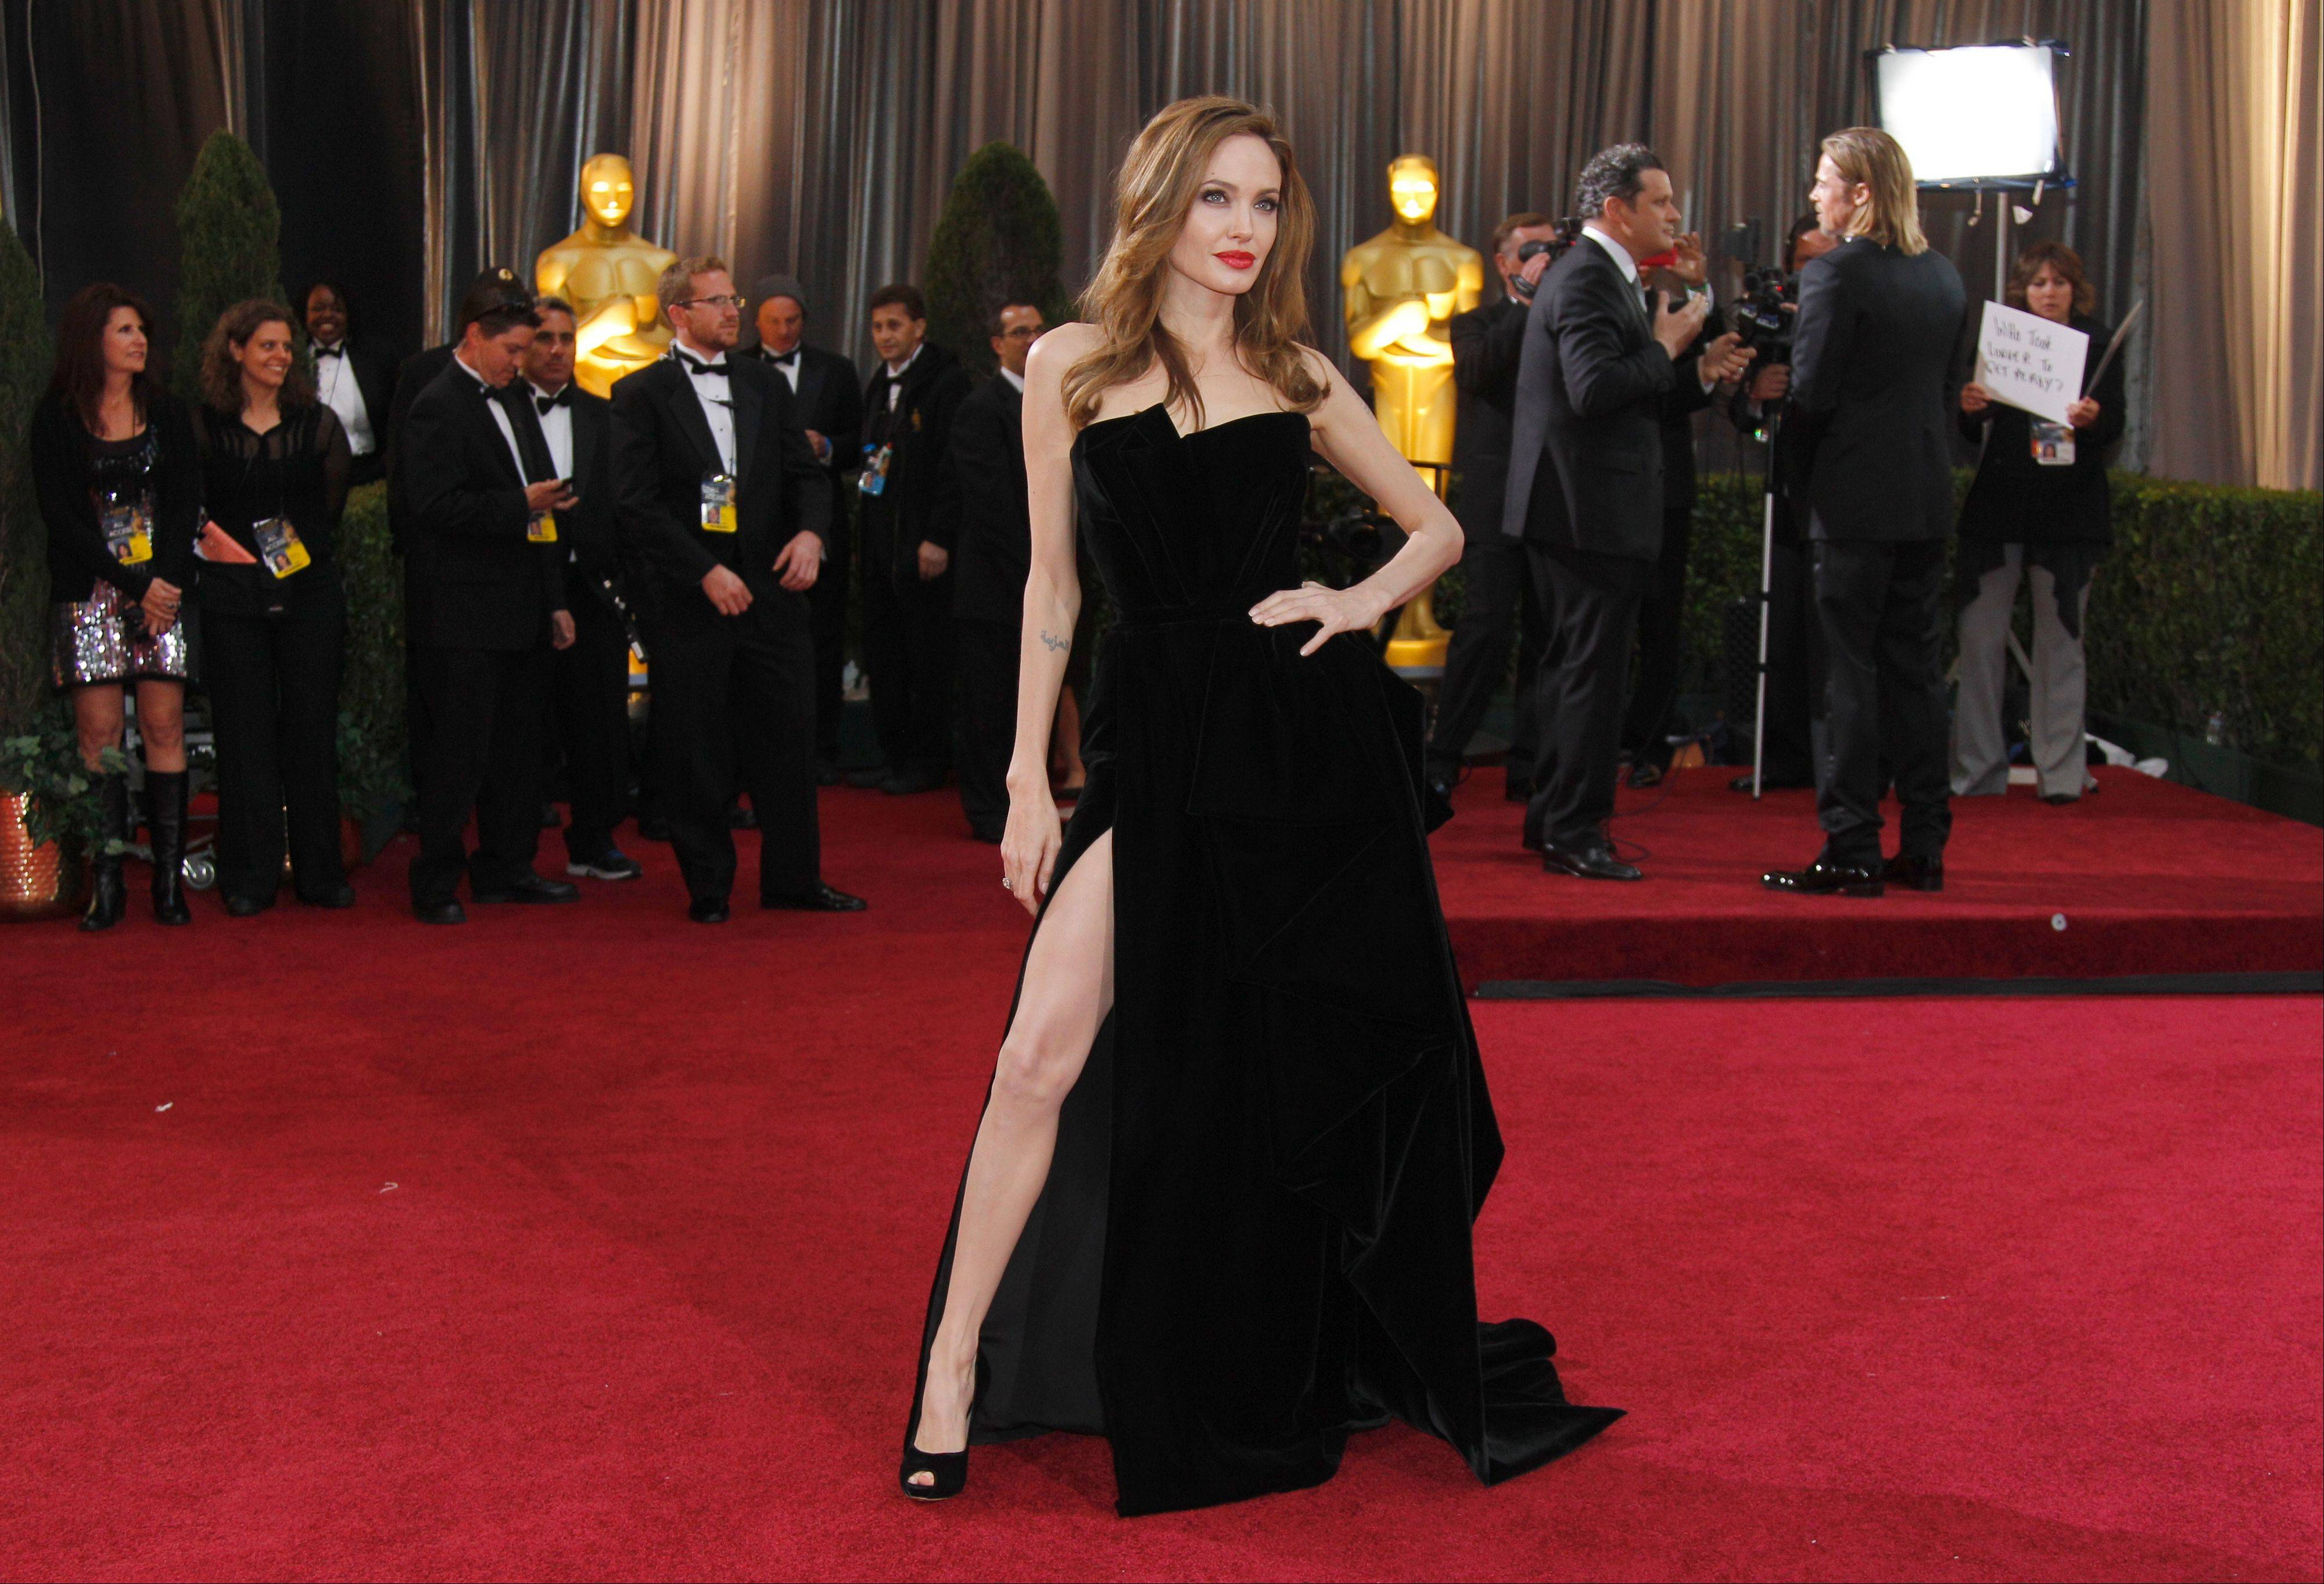 This Feb. 26, 2012 file photo shows Angelina Jolie posing before the 84th Academy Awards in the Hollywood section of Los Angeles. Every year fashion offers up the good, the bad and the ugly. But what the industry is really built on _ and consumers respond to _ is buzz. Jolie�s leg, that peeked out of the high thigh-high slit of her Versace gown, was the most exciting appearance on the red carpet.